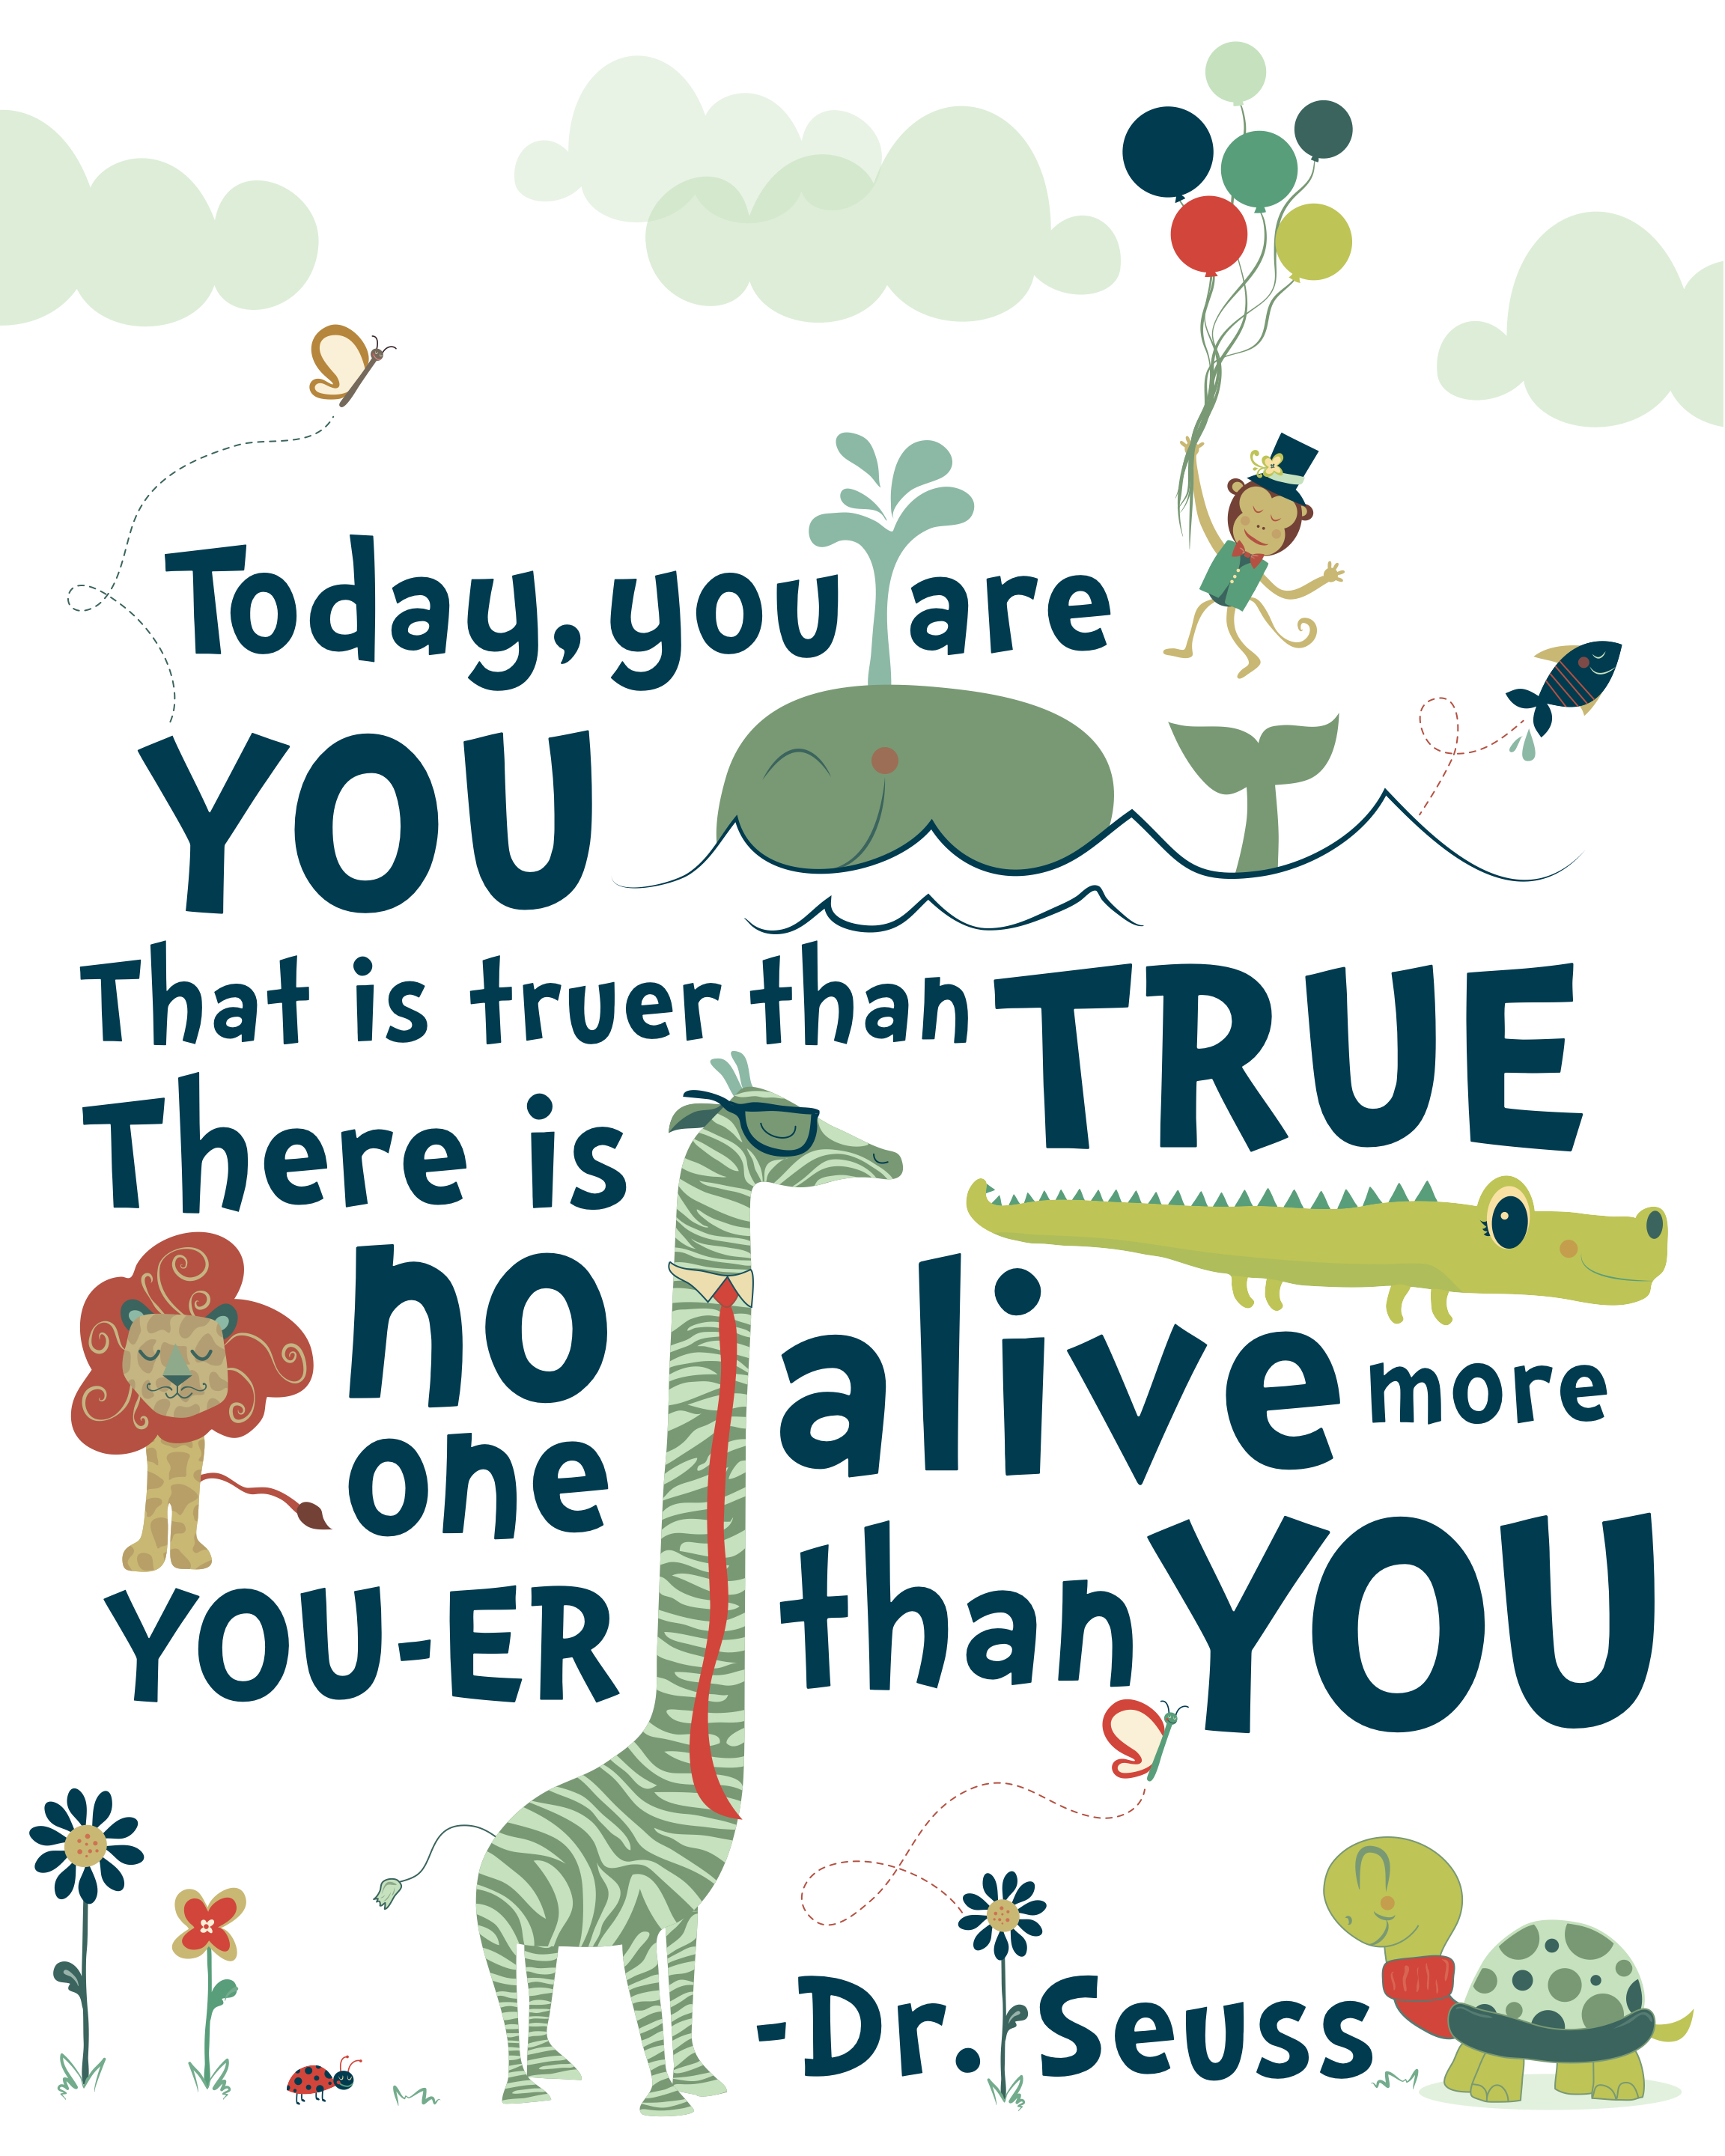 dr-seuss-quotes-be-who-you-aretoday-you-are-you-that-is-truer-than-true-dr-seuss-g-liza-design-xxckrvaf.jpg